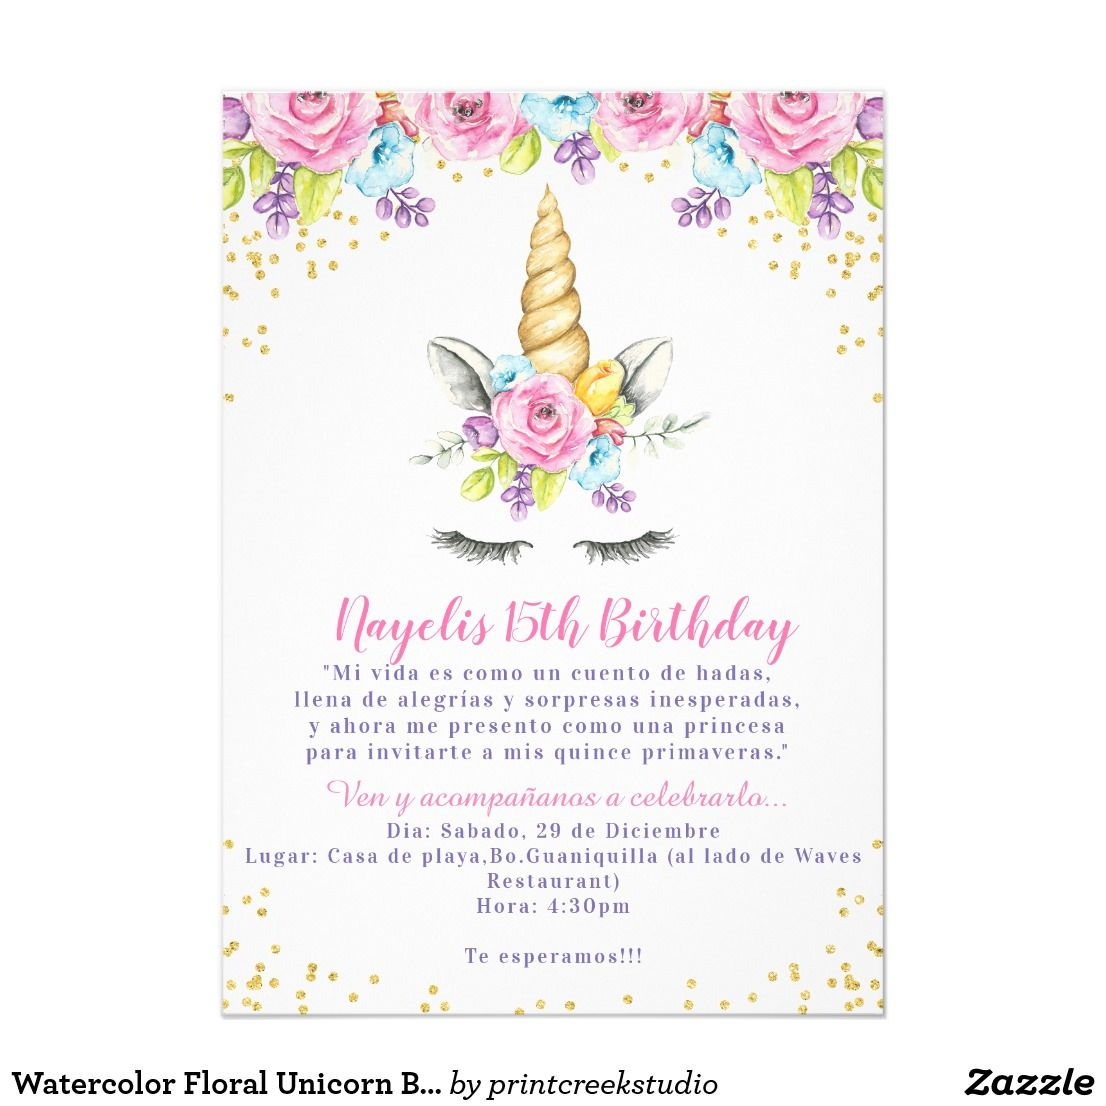 Watercolor Floral Unicorn Baby Shower Invitations Zazzle Com